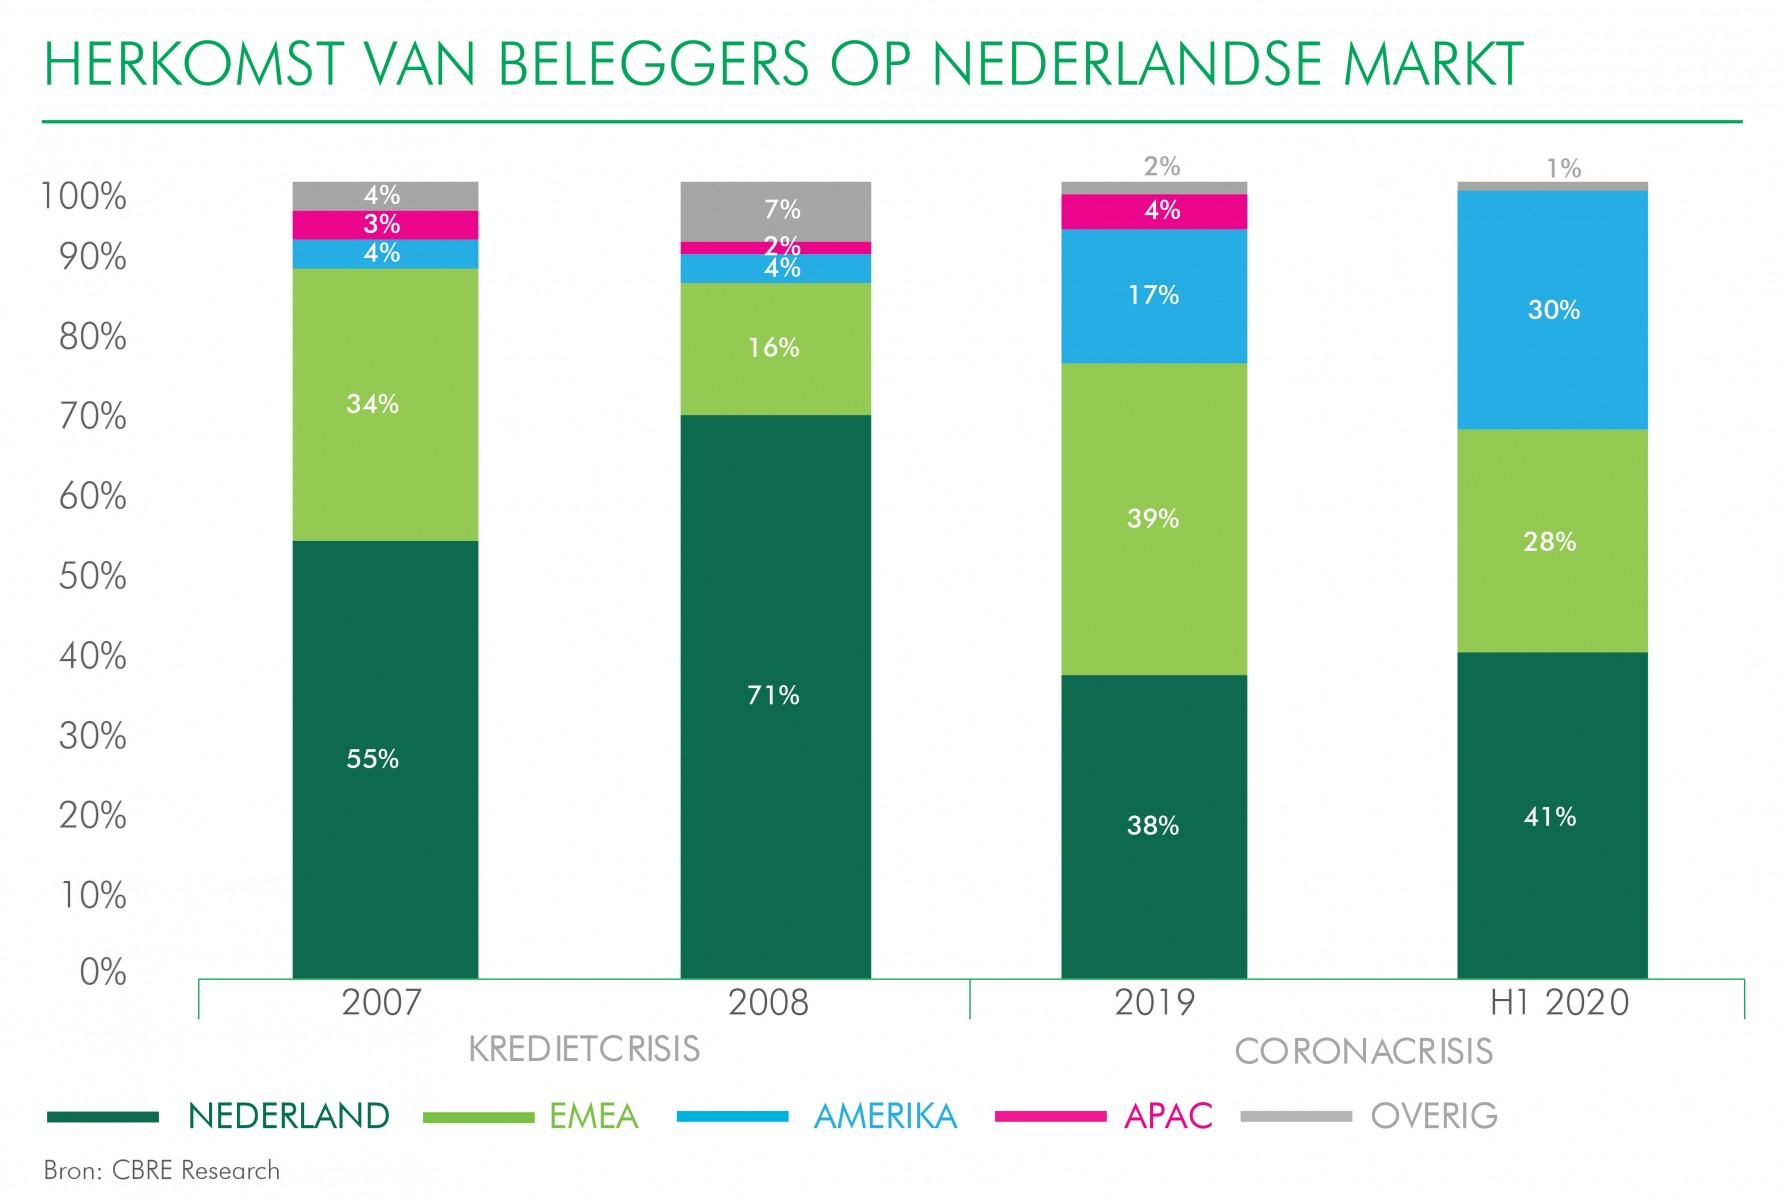 2020 Outlook MID-YEAR HERKOMST VAN BELEGGERS_NL